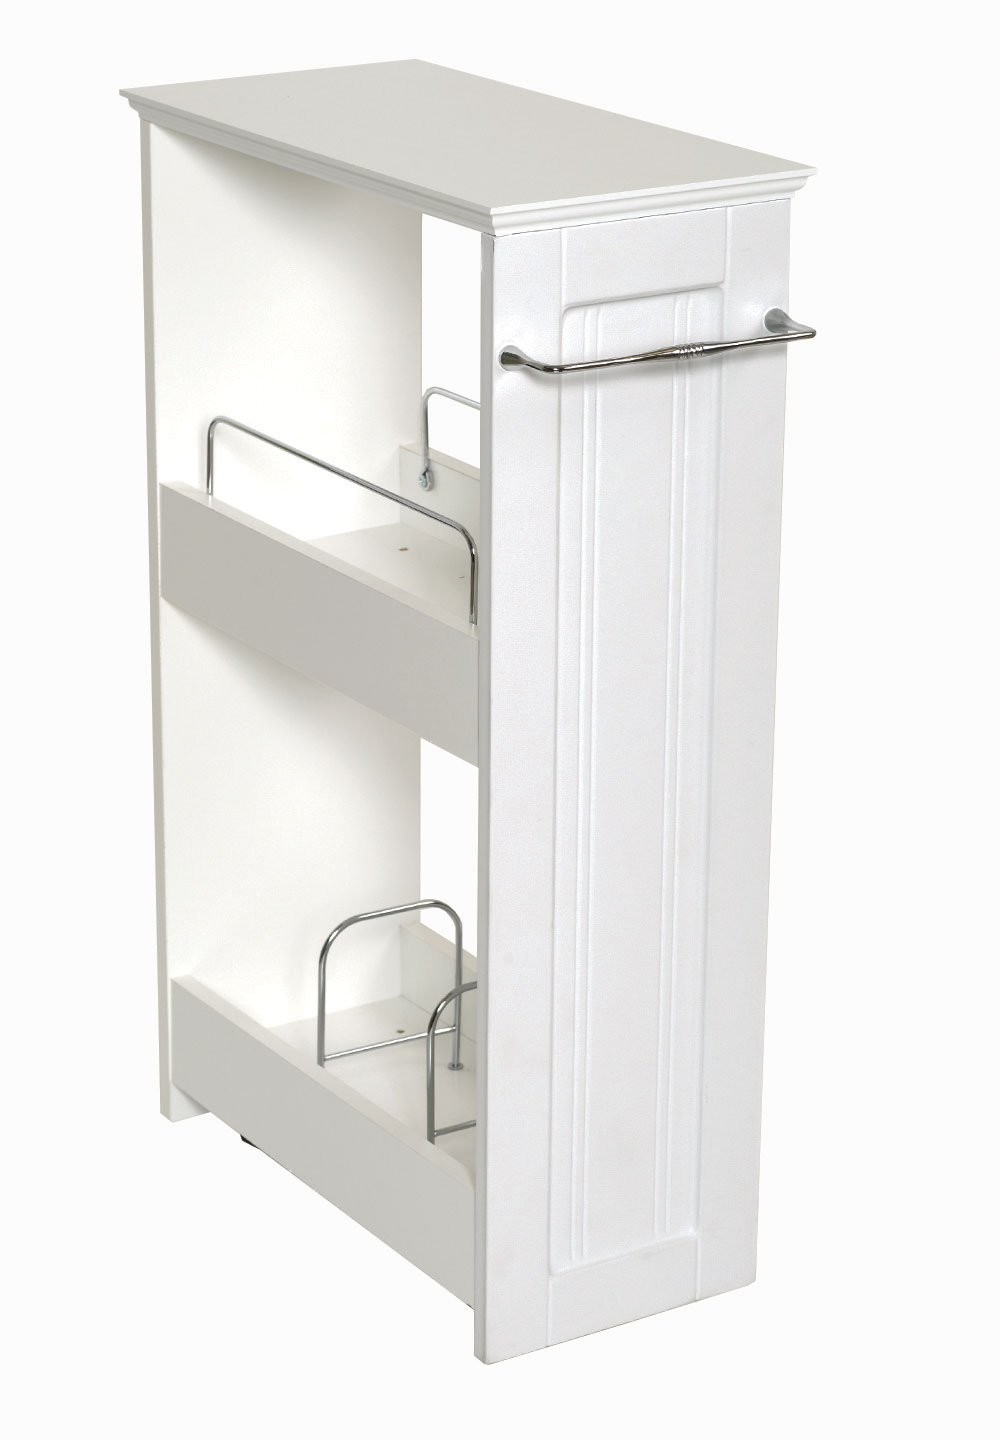 Zenith Products Slimline Rolling Storage Shelf 9227WWBB